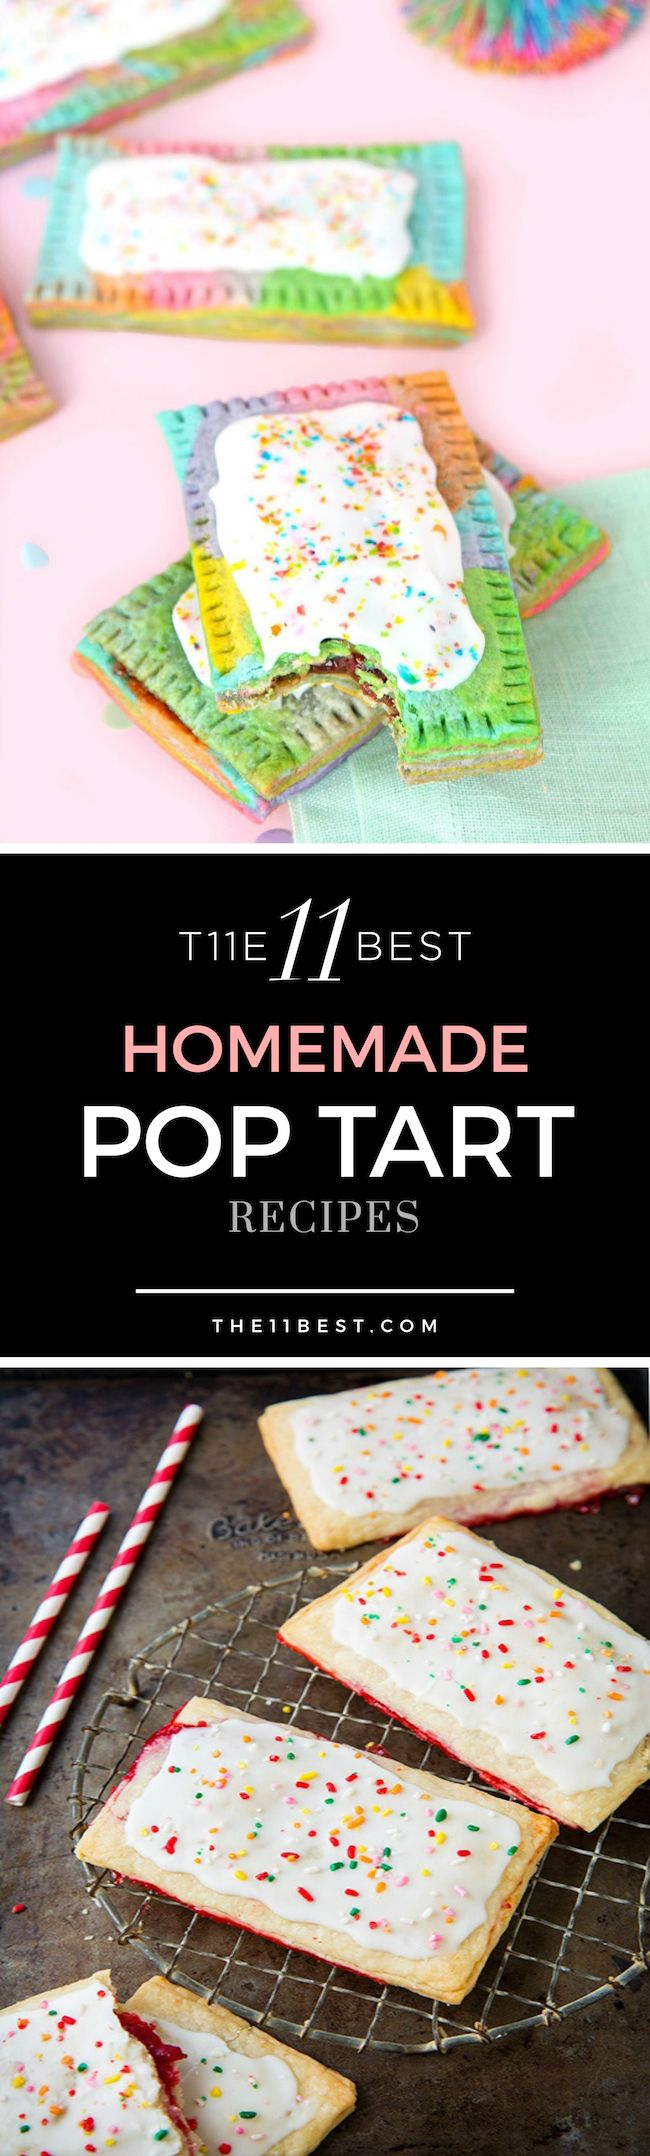 The 11 Best Homemade Pop Tarts Recipes